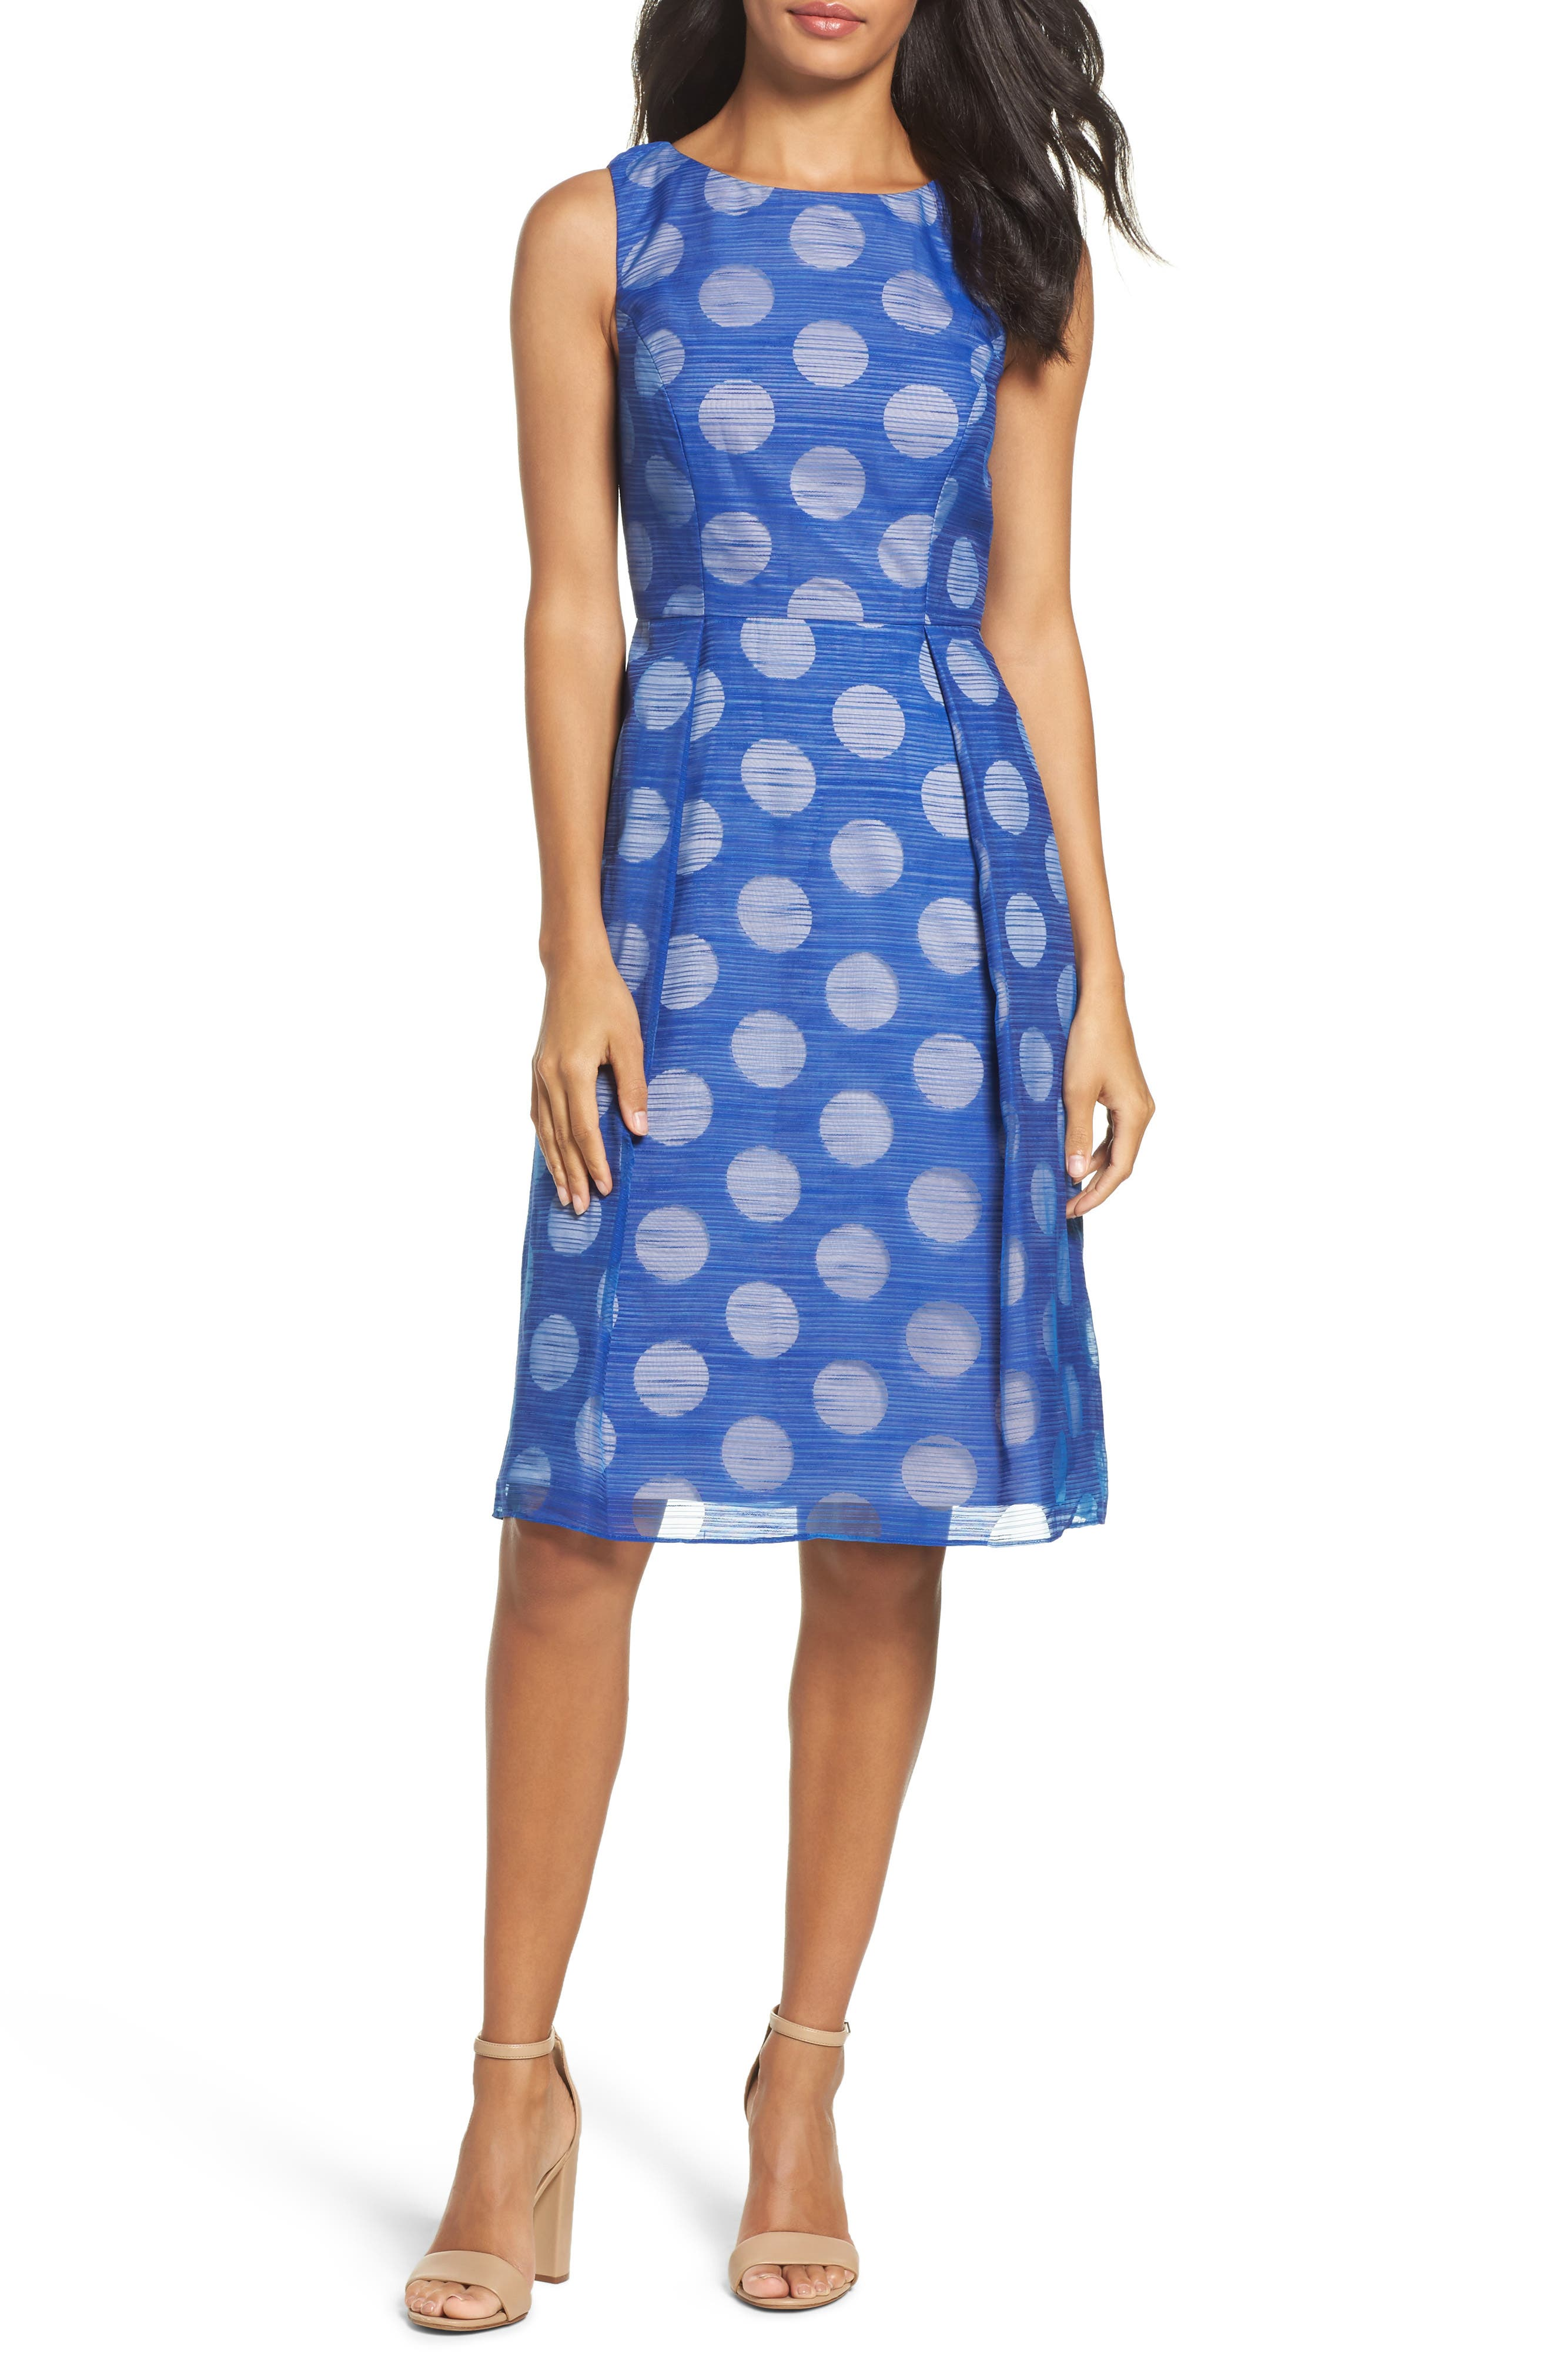 Adrianna Papell Pop Dot Fit & Flare Dress